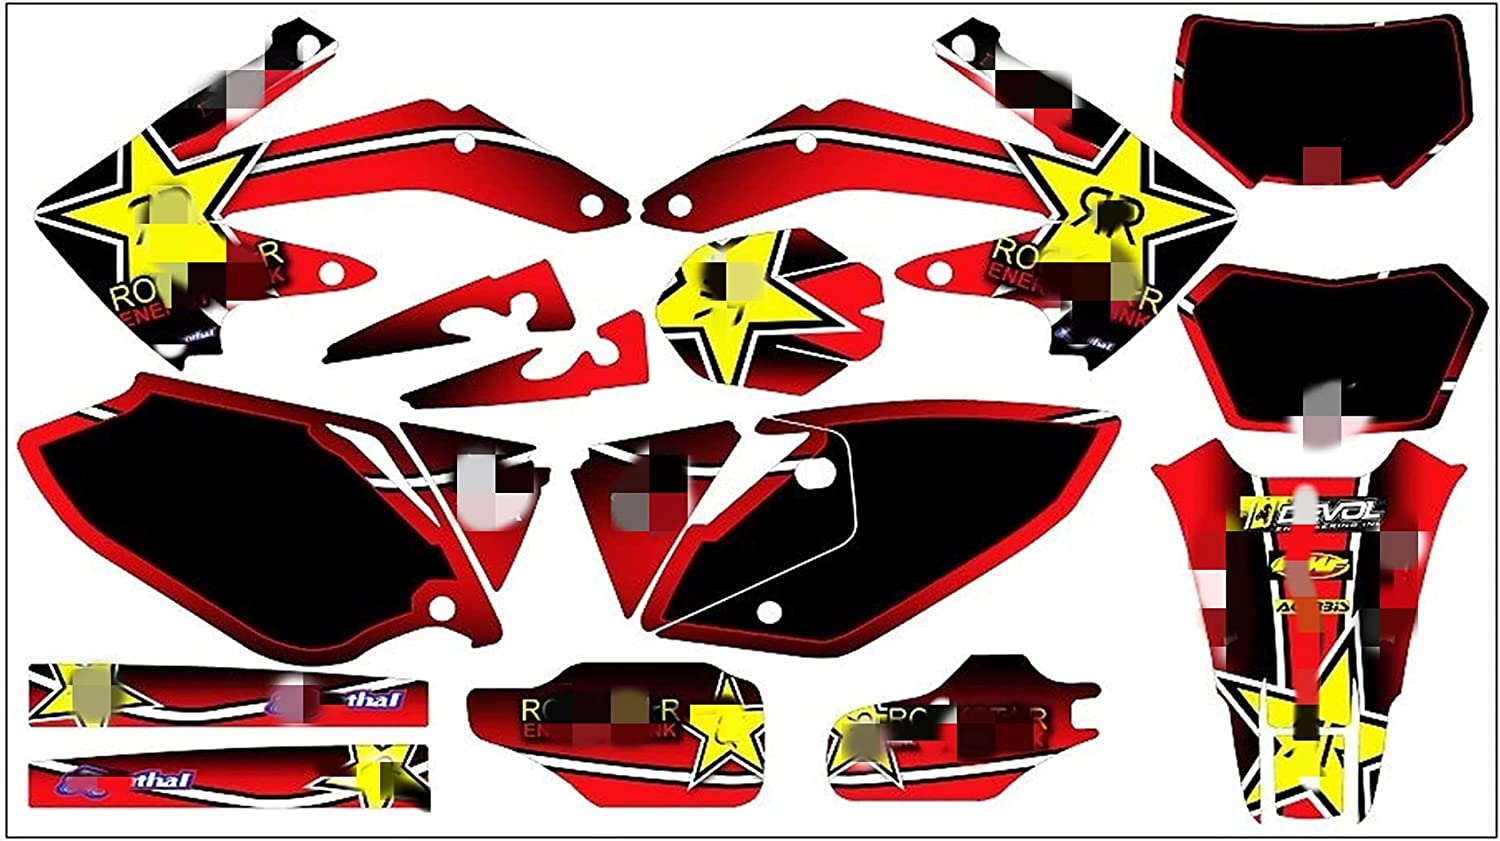 bazutiwns MDJC2005 Customized 3M Super beauty product restock quality top! Grap Motorcycle Stickers Decals Latest item